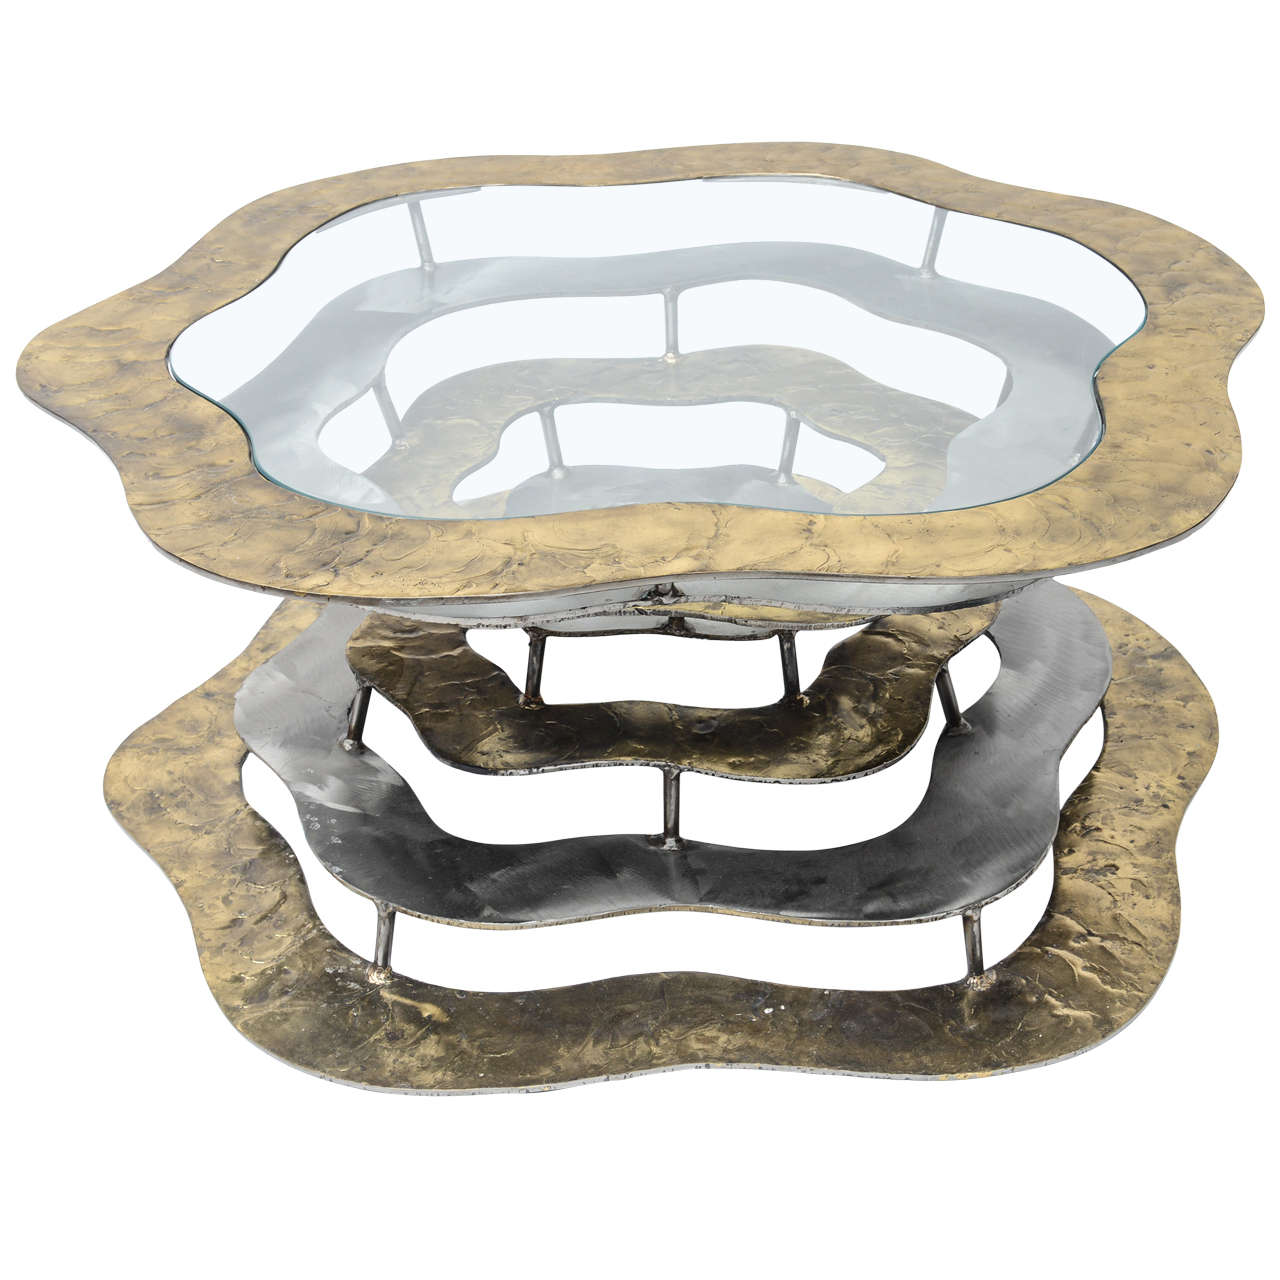 Silas Seandel Volcano Coffee Table 1